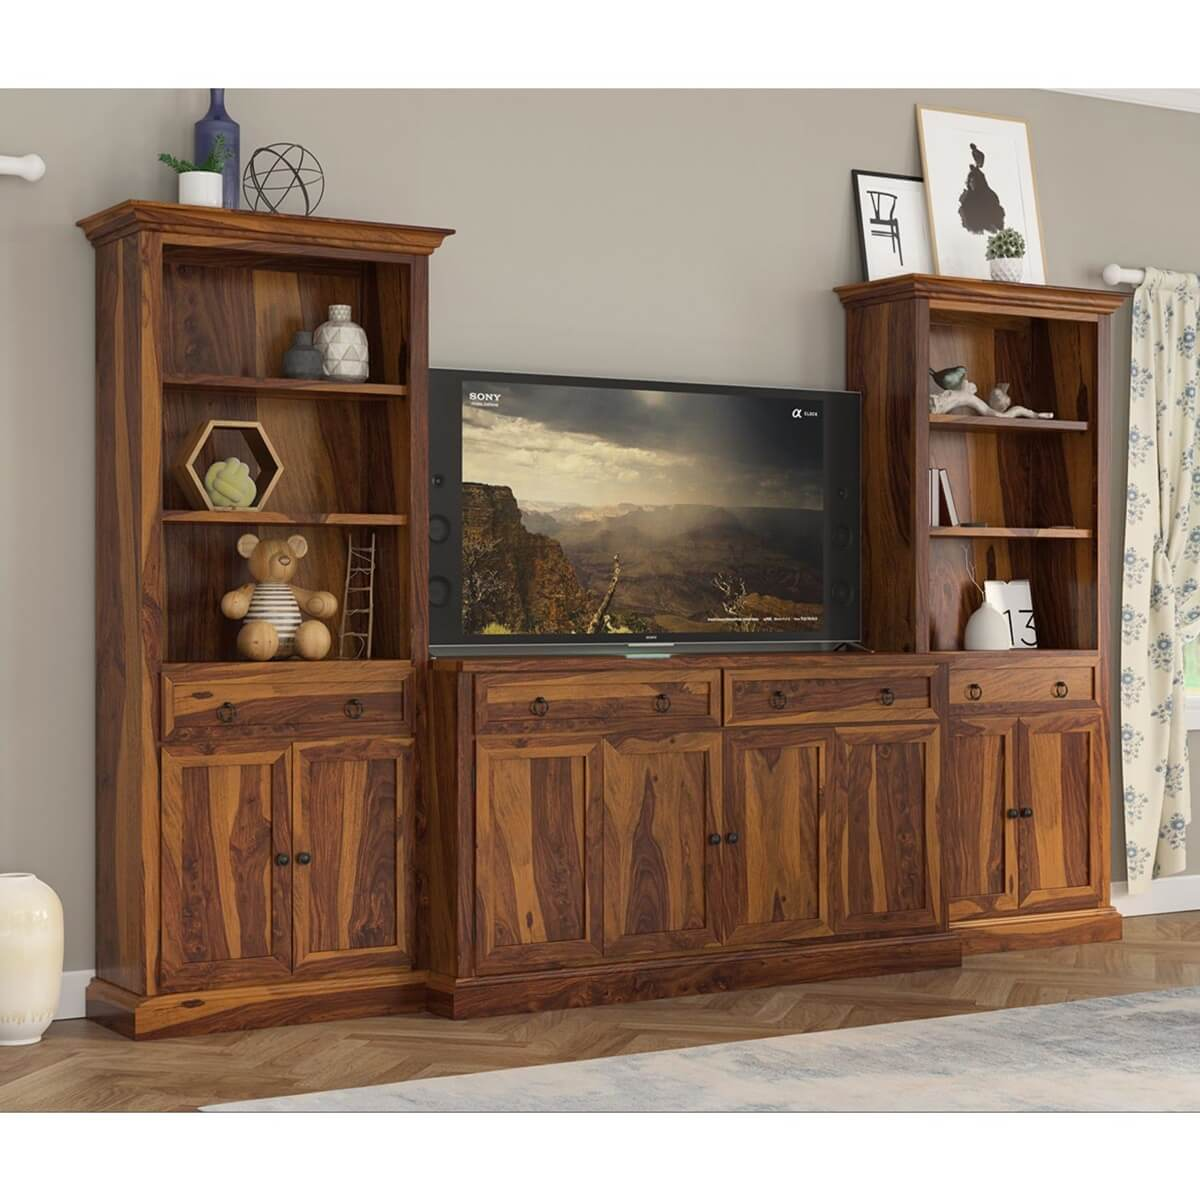 Lilesville Rustic Solid Wood TV Entertainment Center with Bookshelves